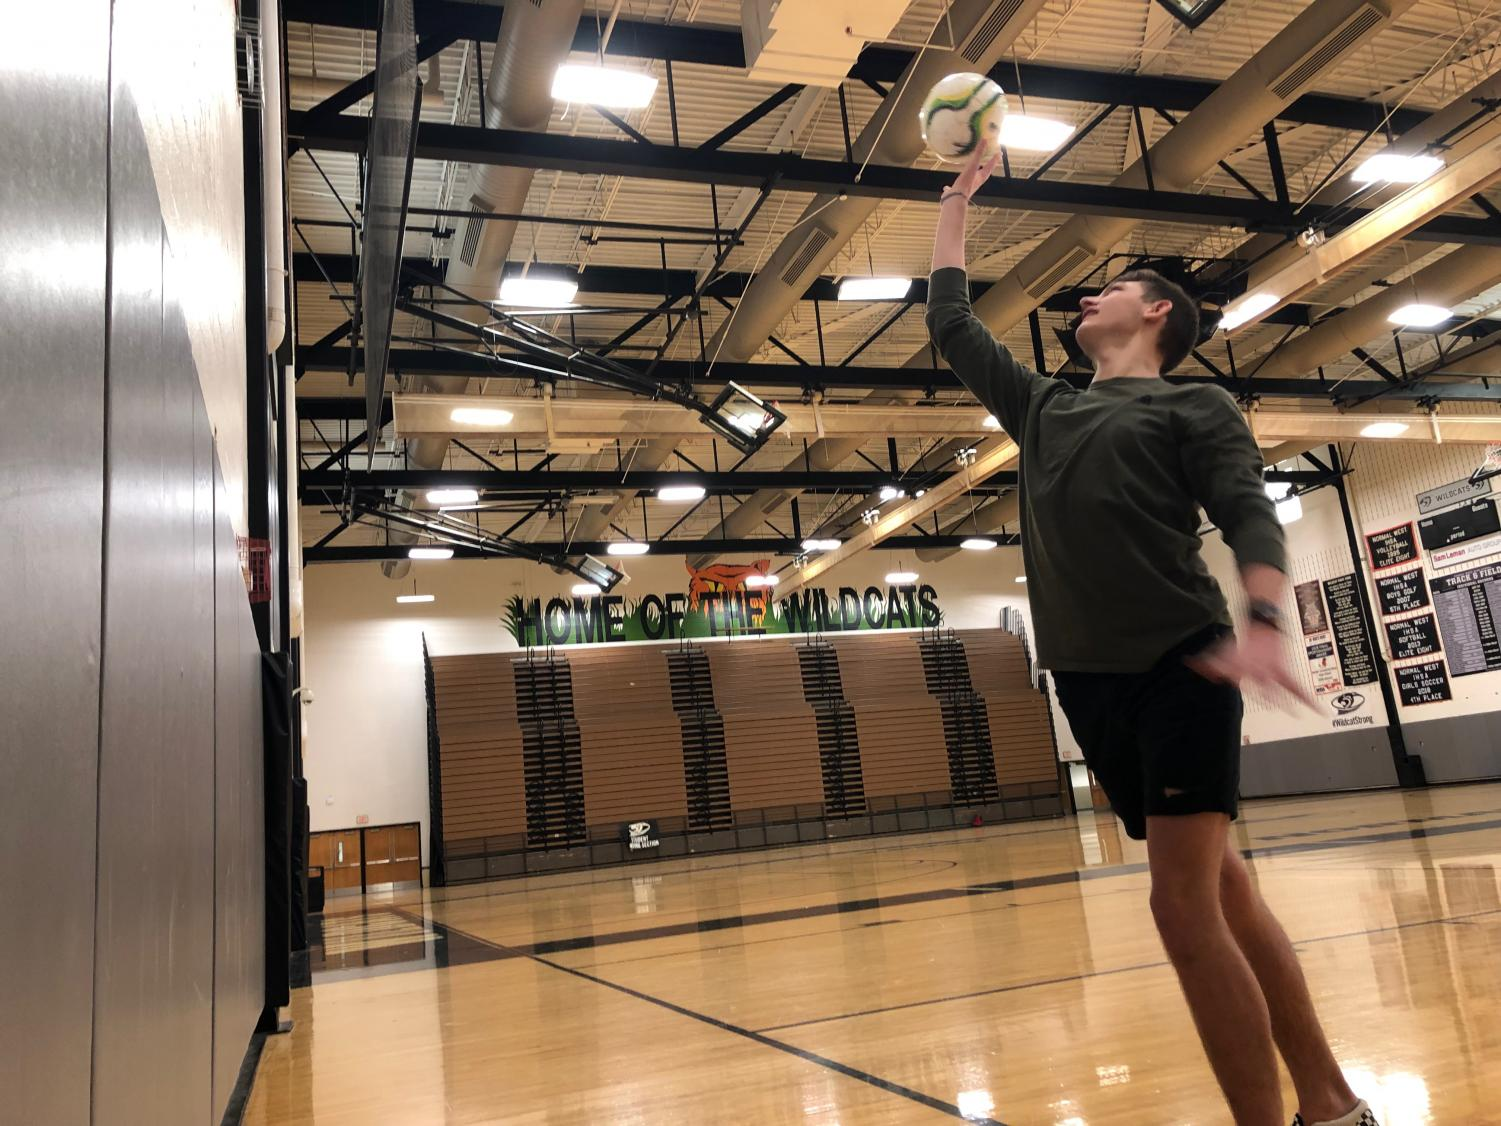 Junior Keaton Knuth plays volleyball in PE. PE classes are trying to establish healthy routines now that students can also take to college. Playing sports, as many classes do, are a good activity for friends to stay healthy.